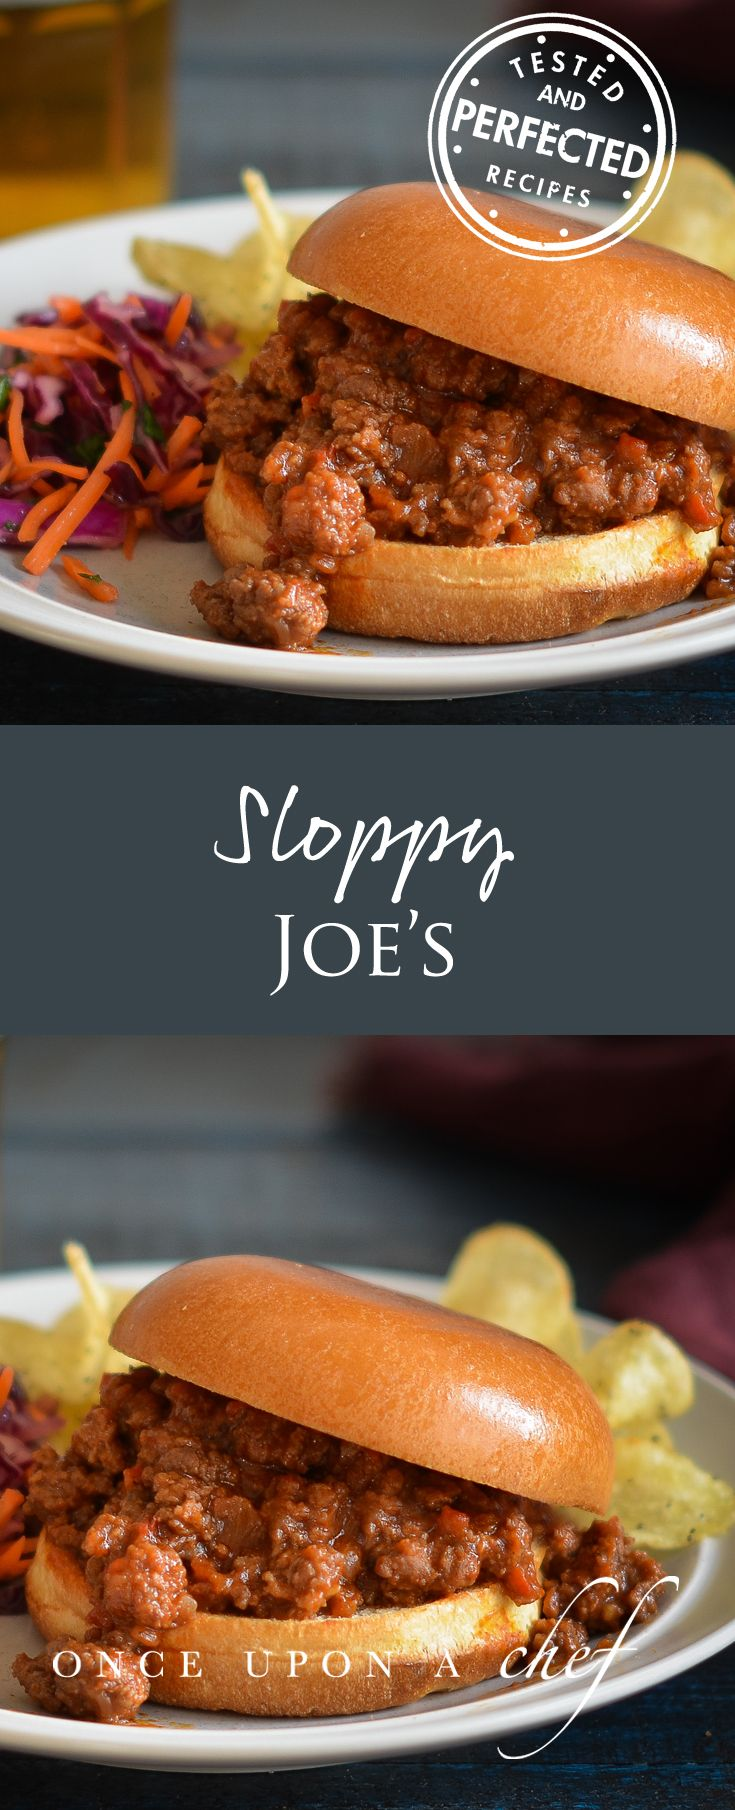 Sloppy Joe's by Once Upon A Chef